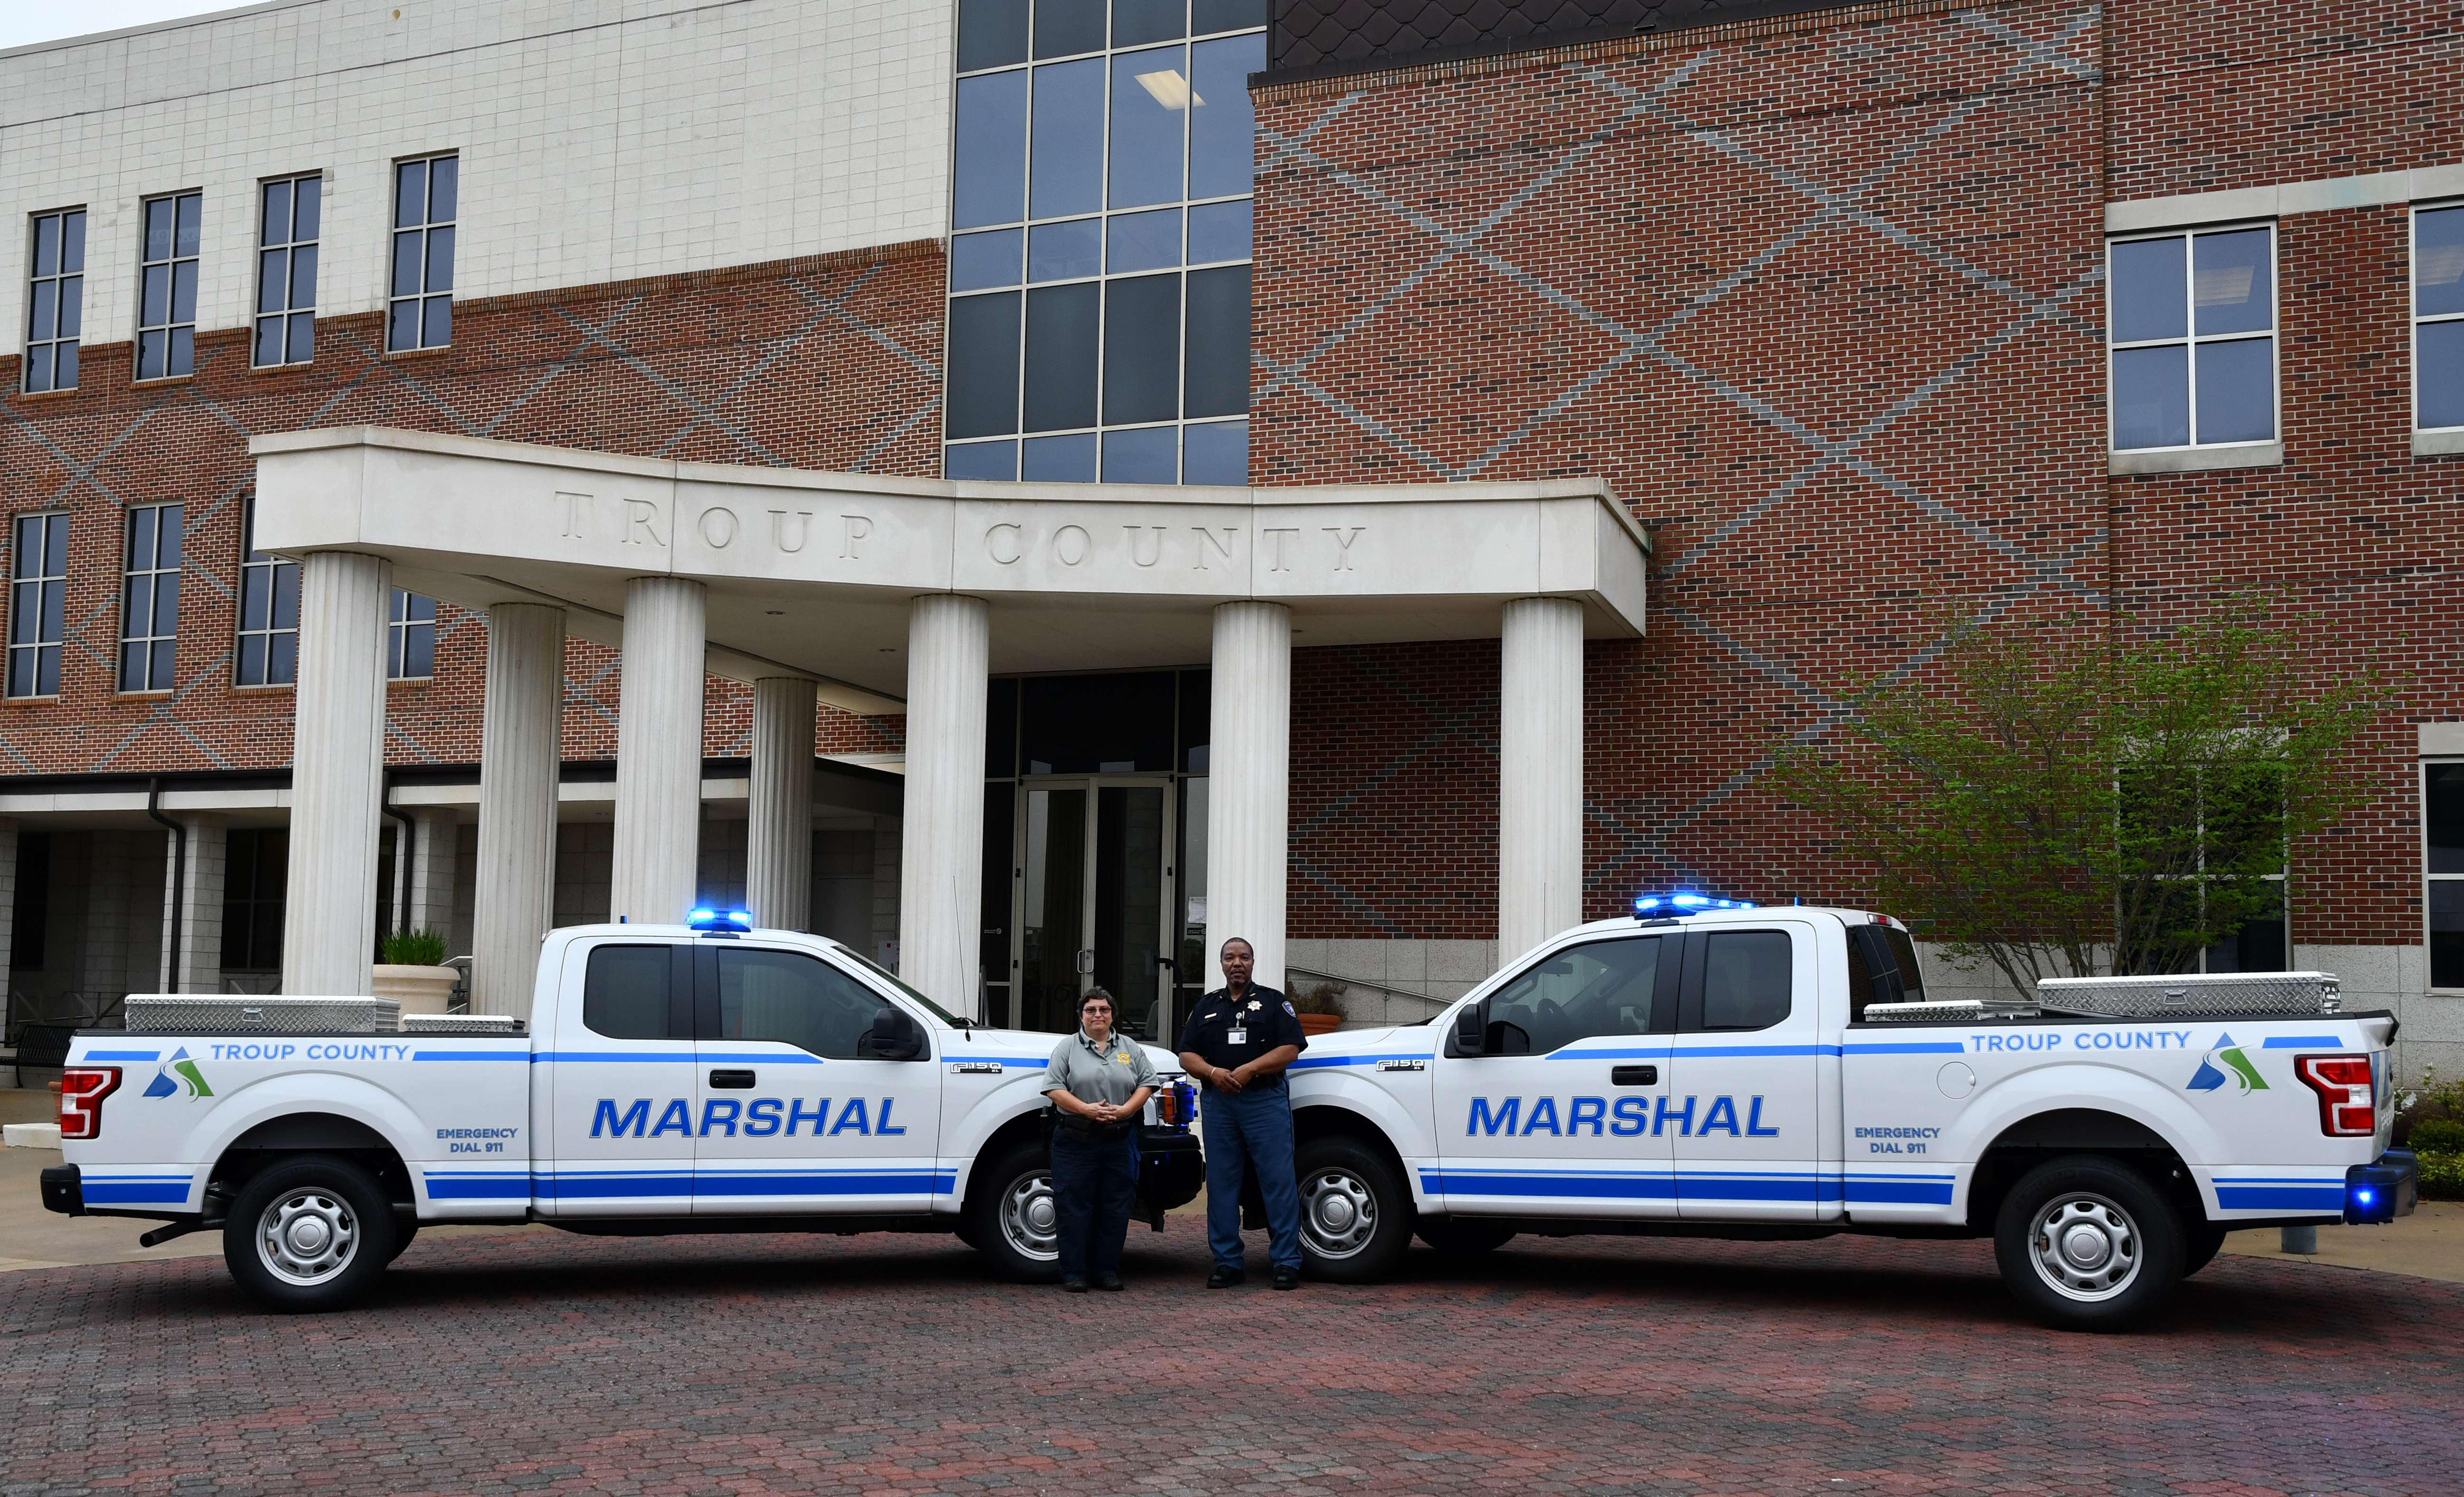 Marshal trucks in front of the Troup County Government center